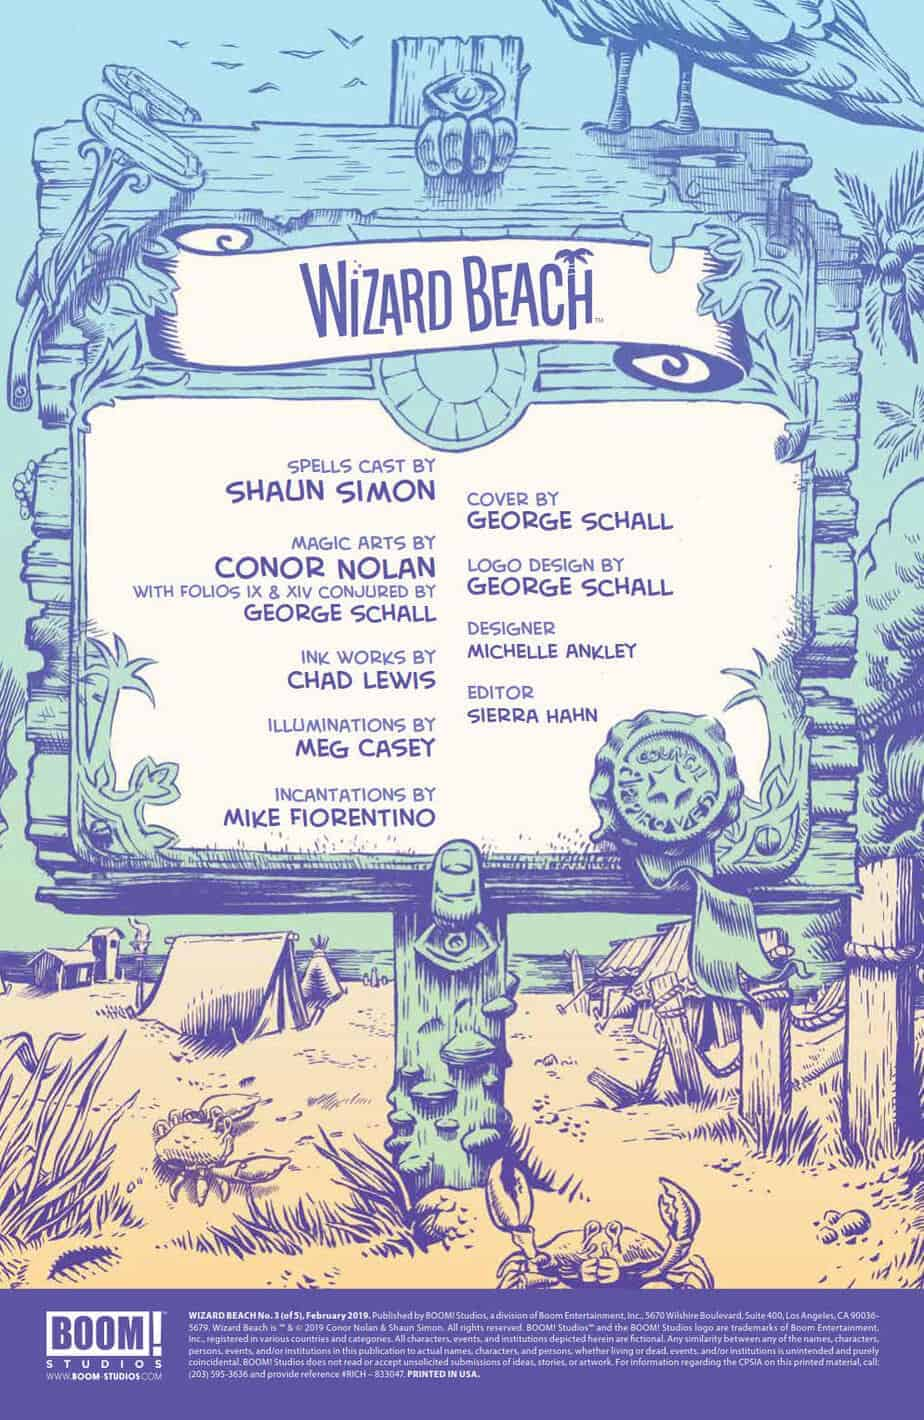 WIzardBeach_003_PRESS_2